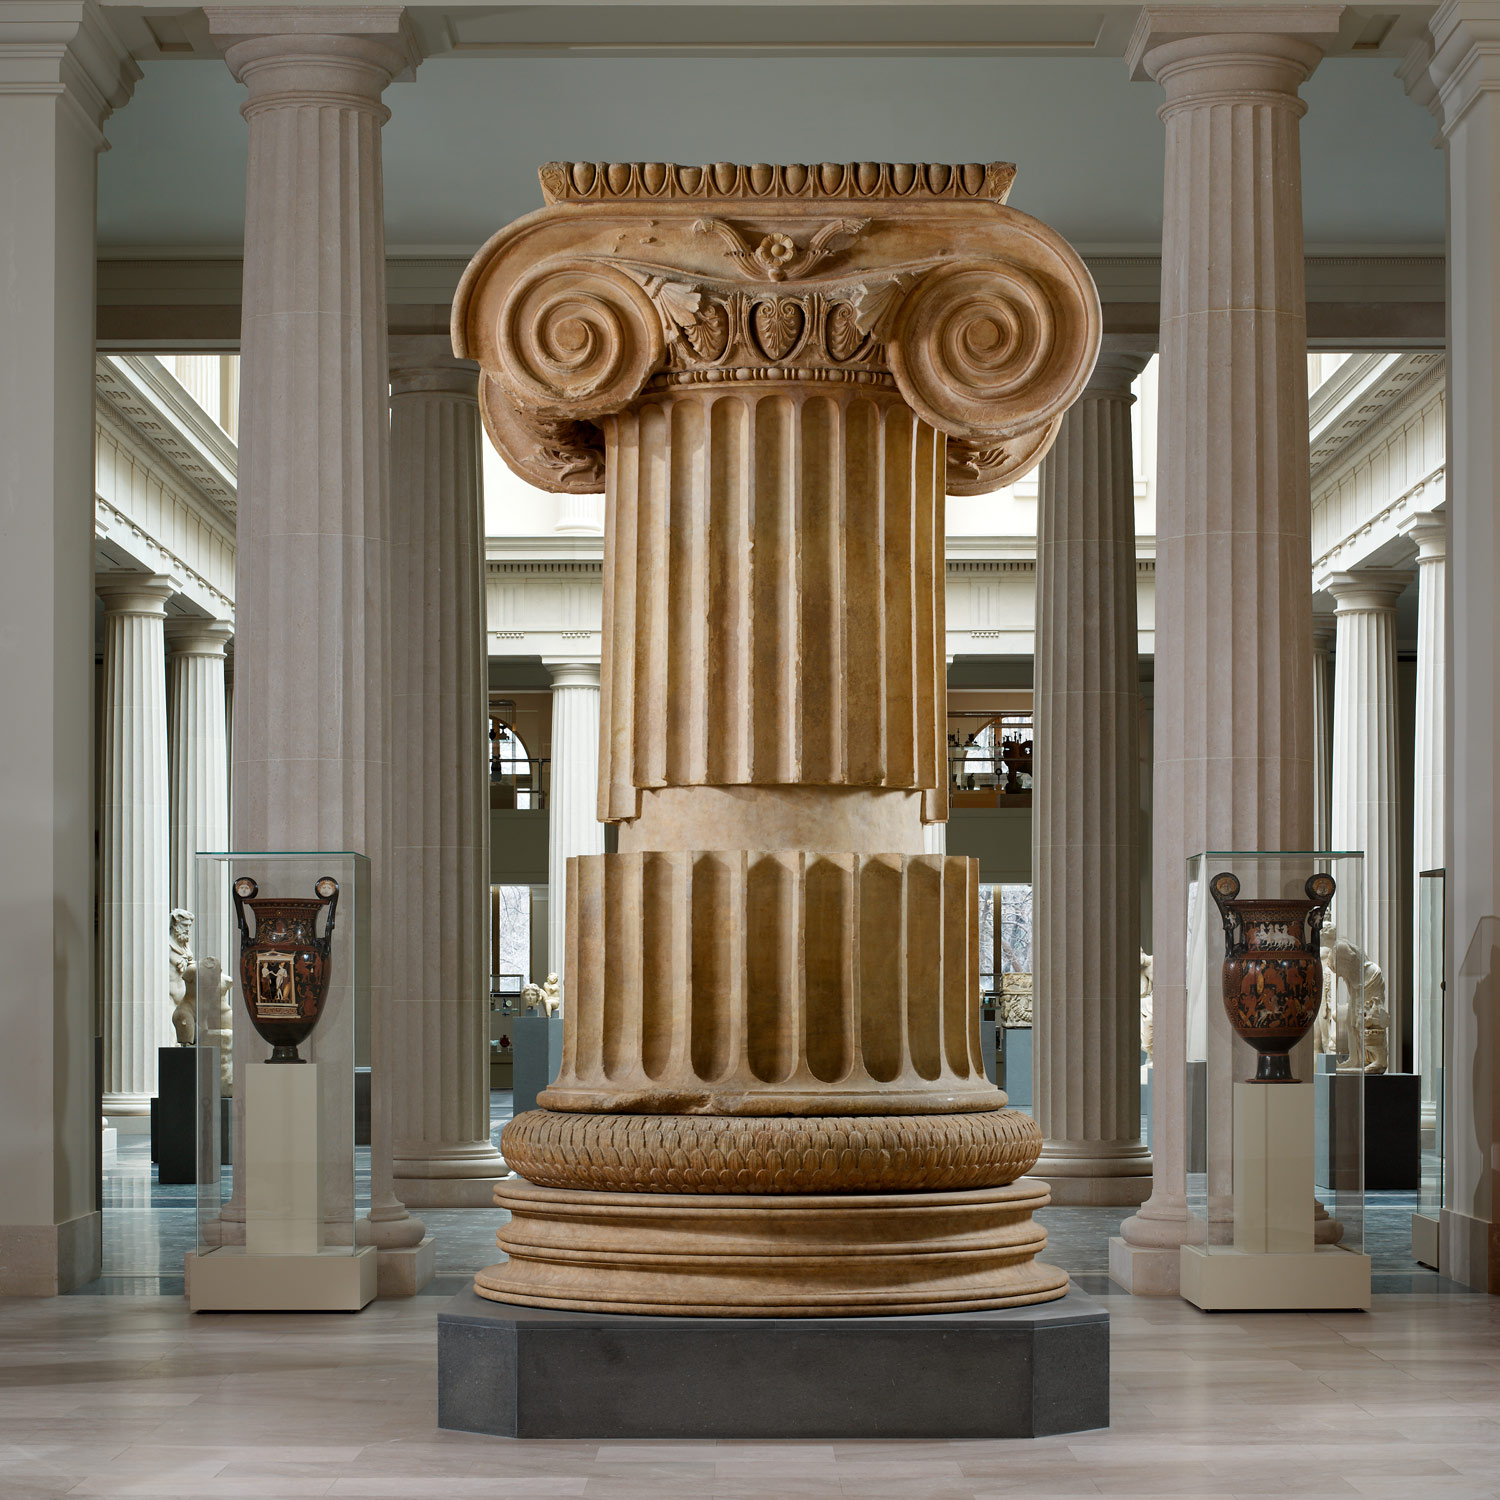 Roman Architecture Columns architecture in ancient greece | essay | heilbrunn timeline of art